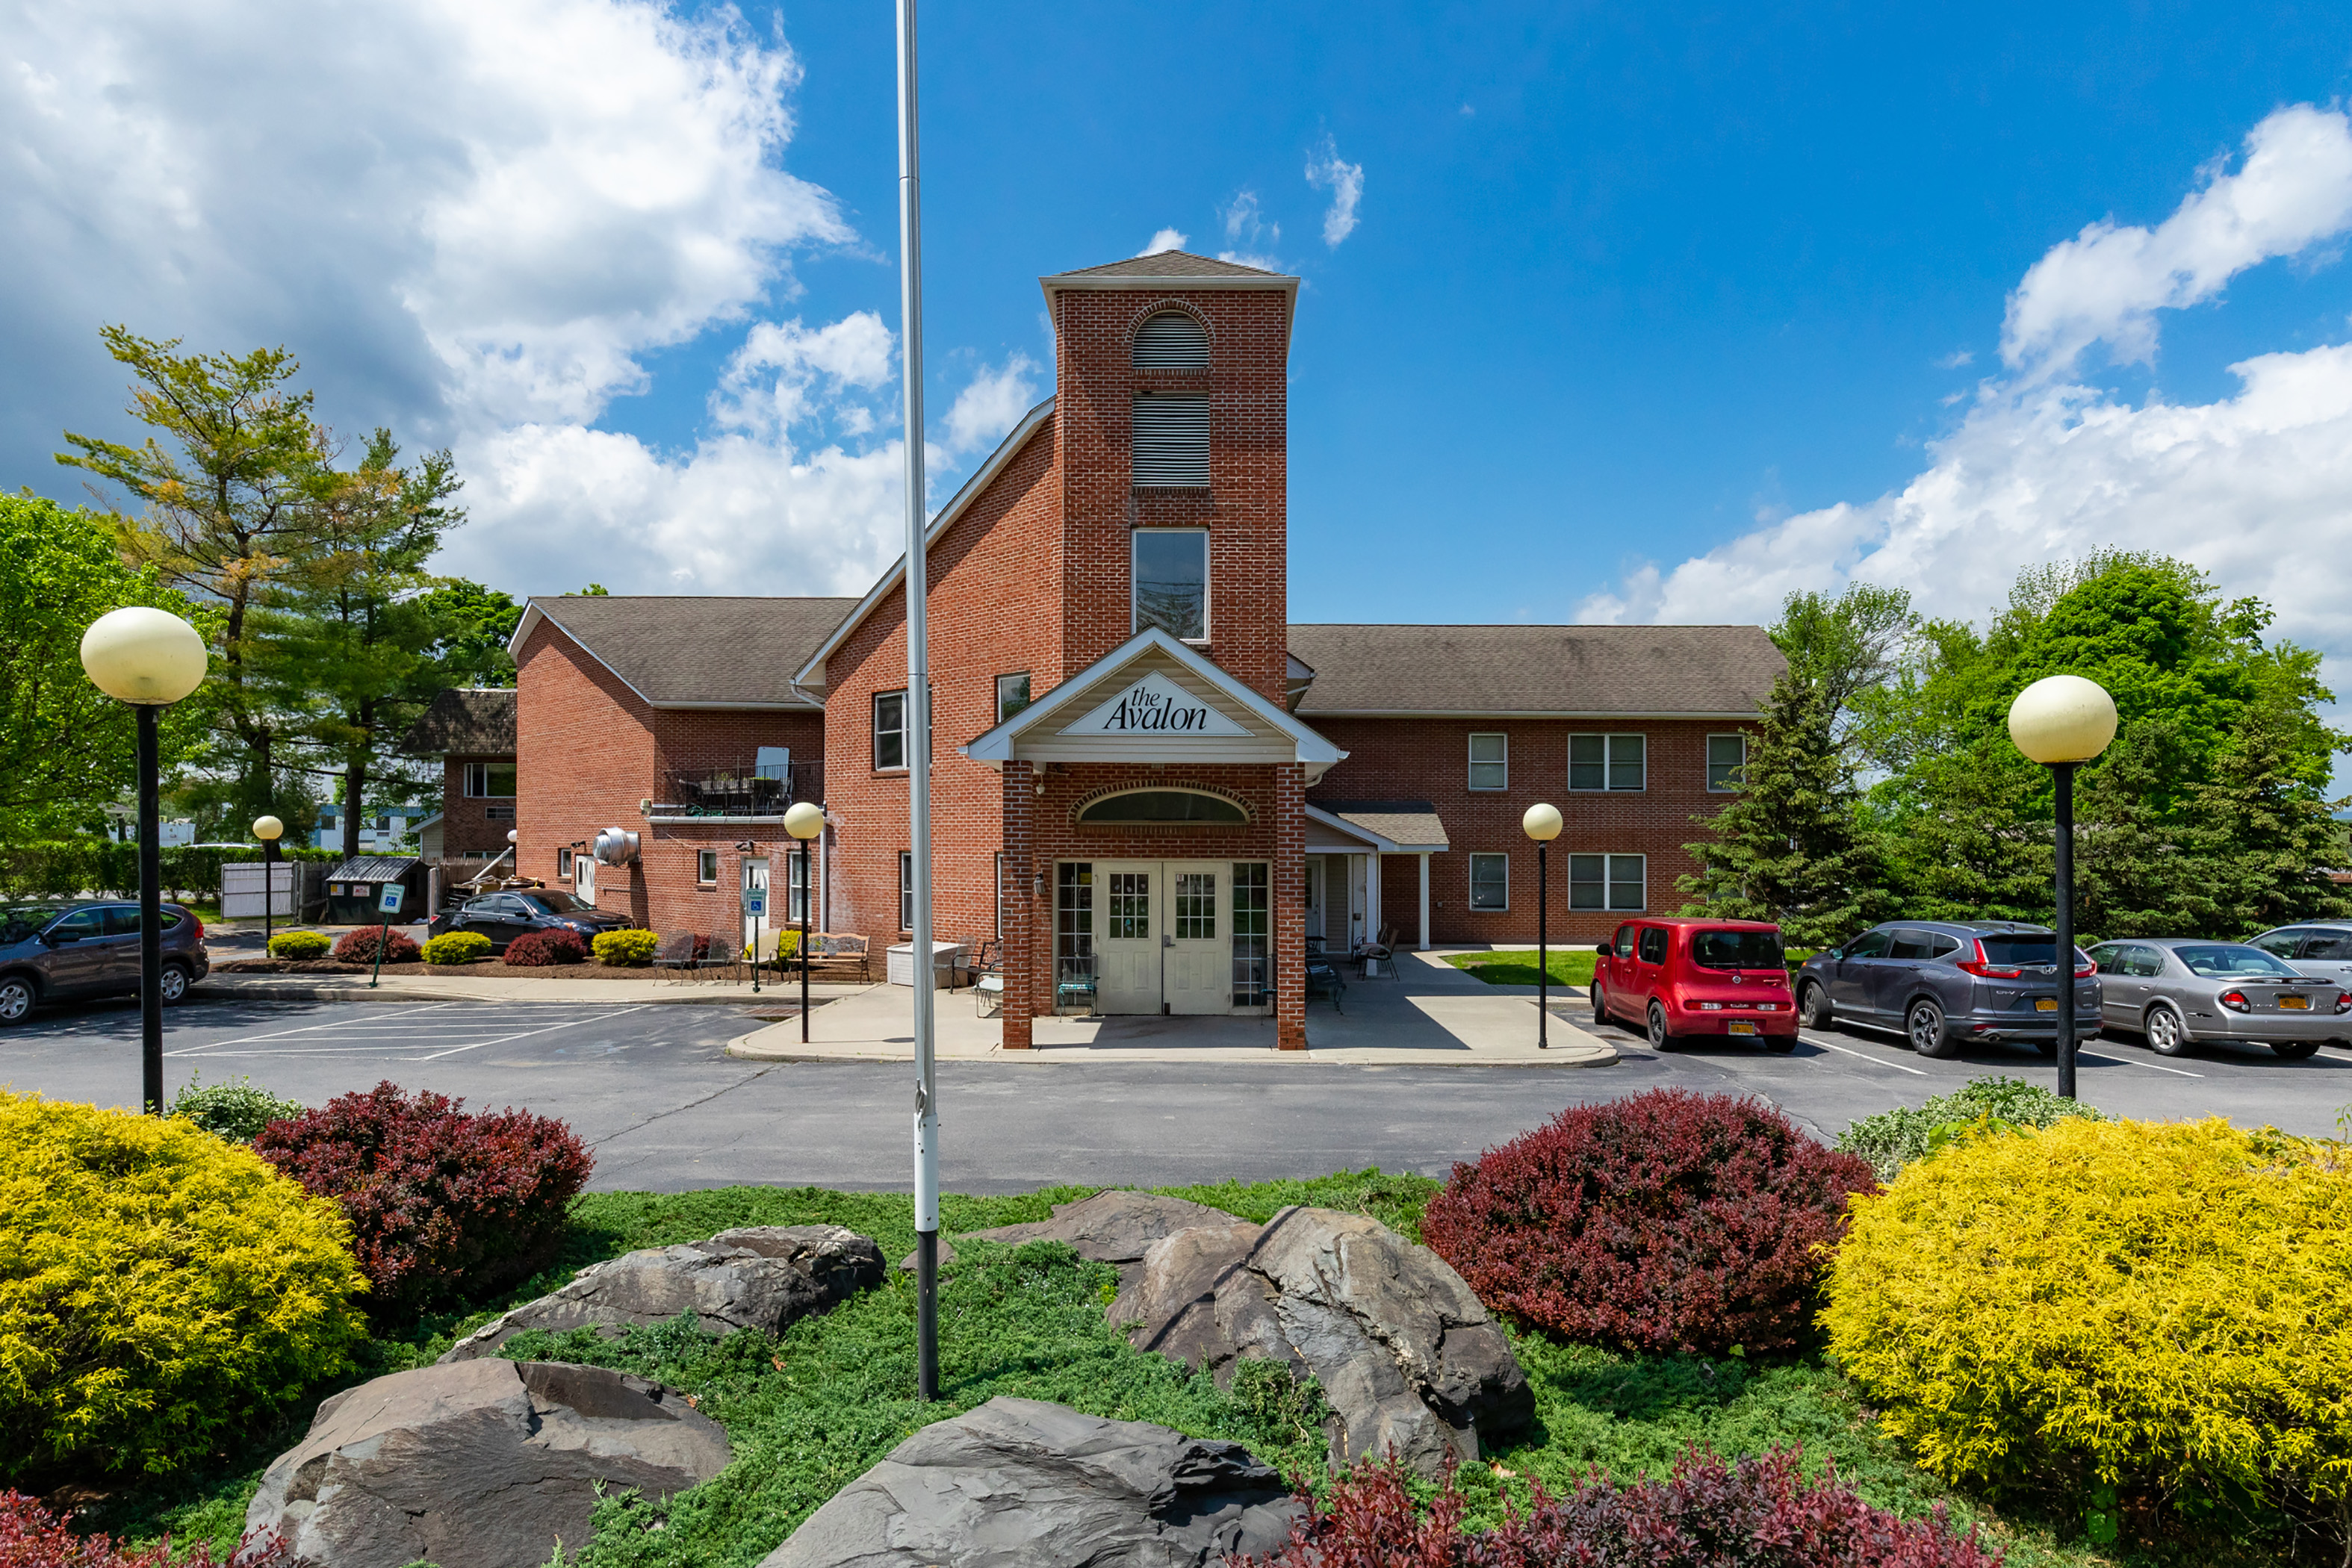 The-Avalon-Assisted-Living-Wellness-Center-Wappingers-Fl